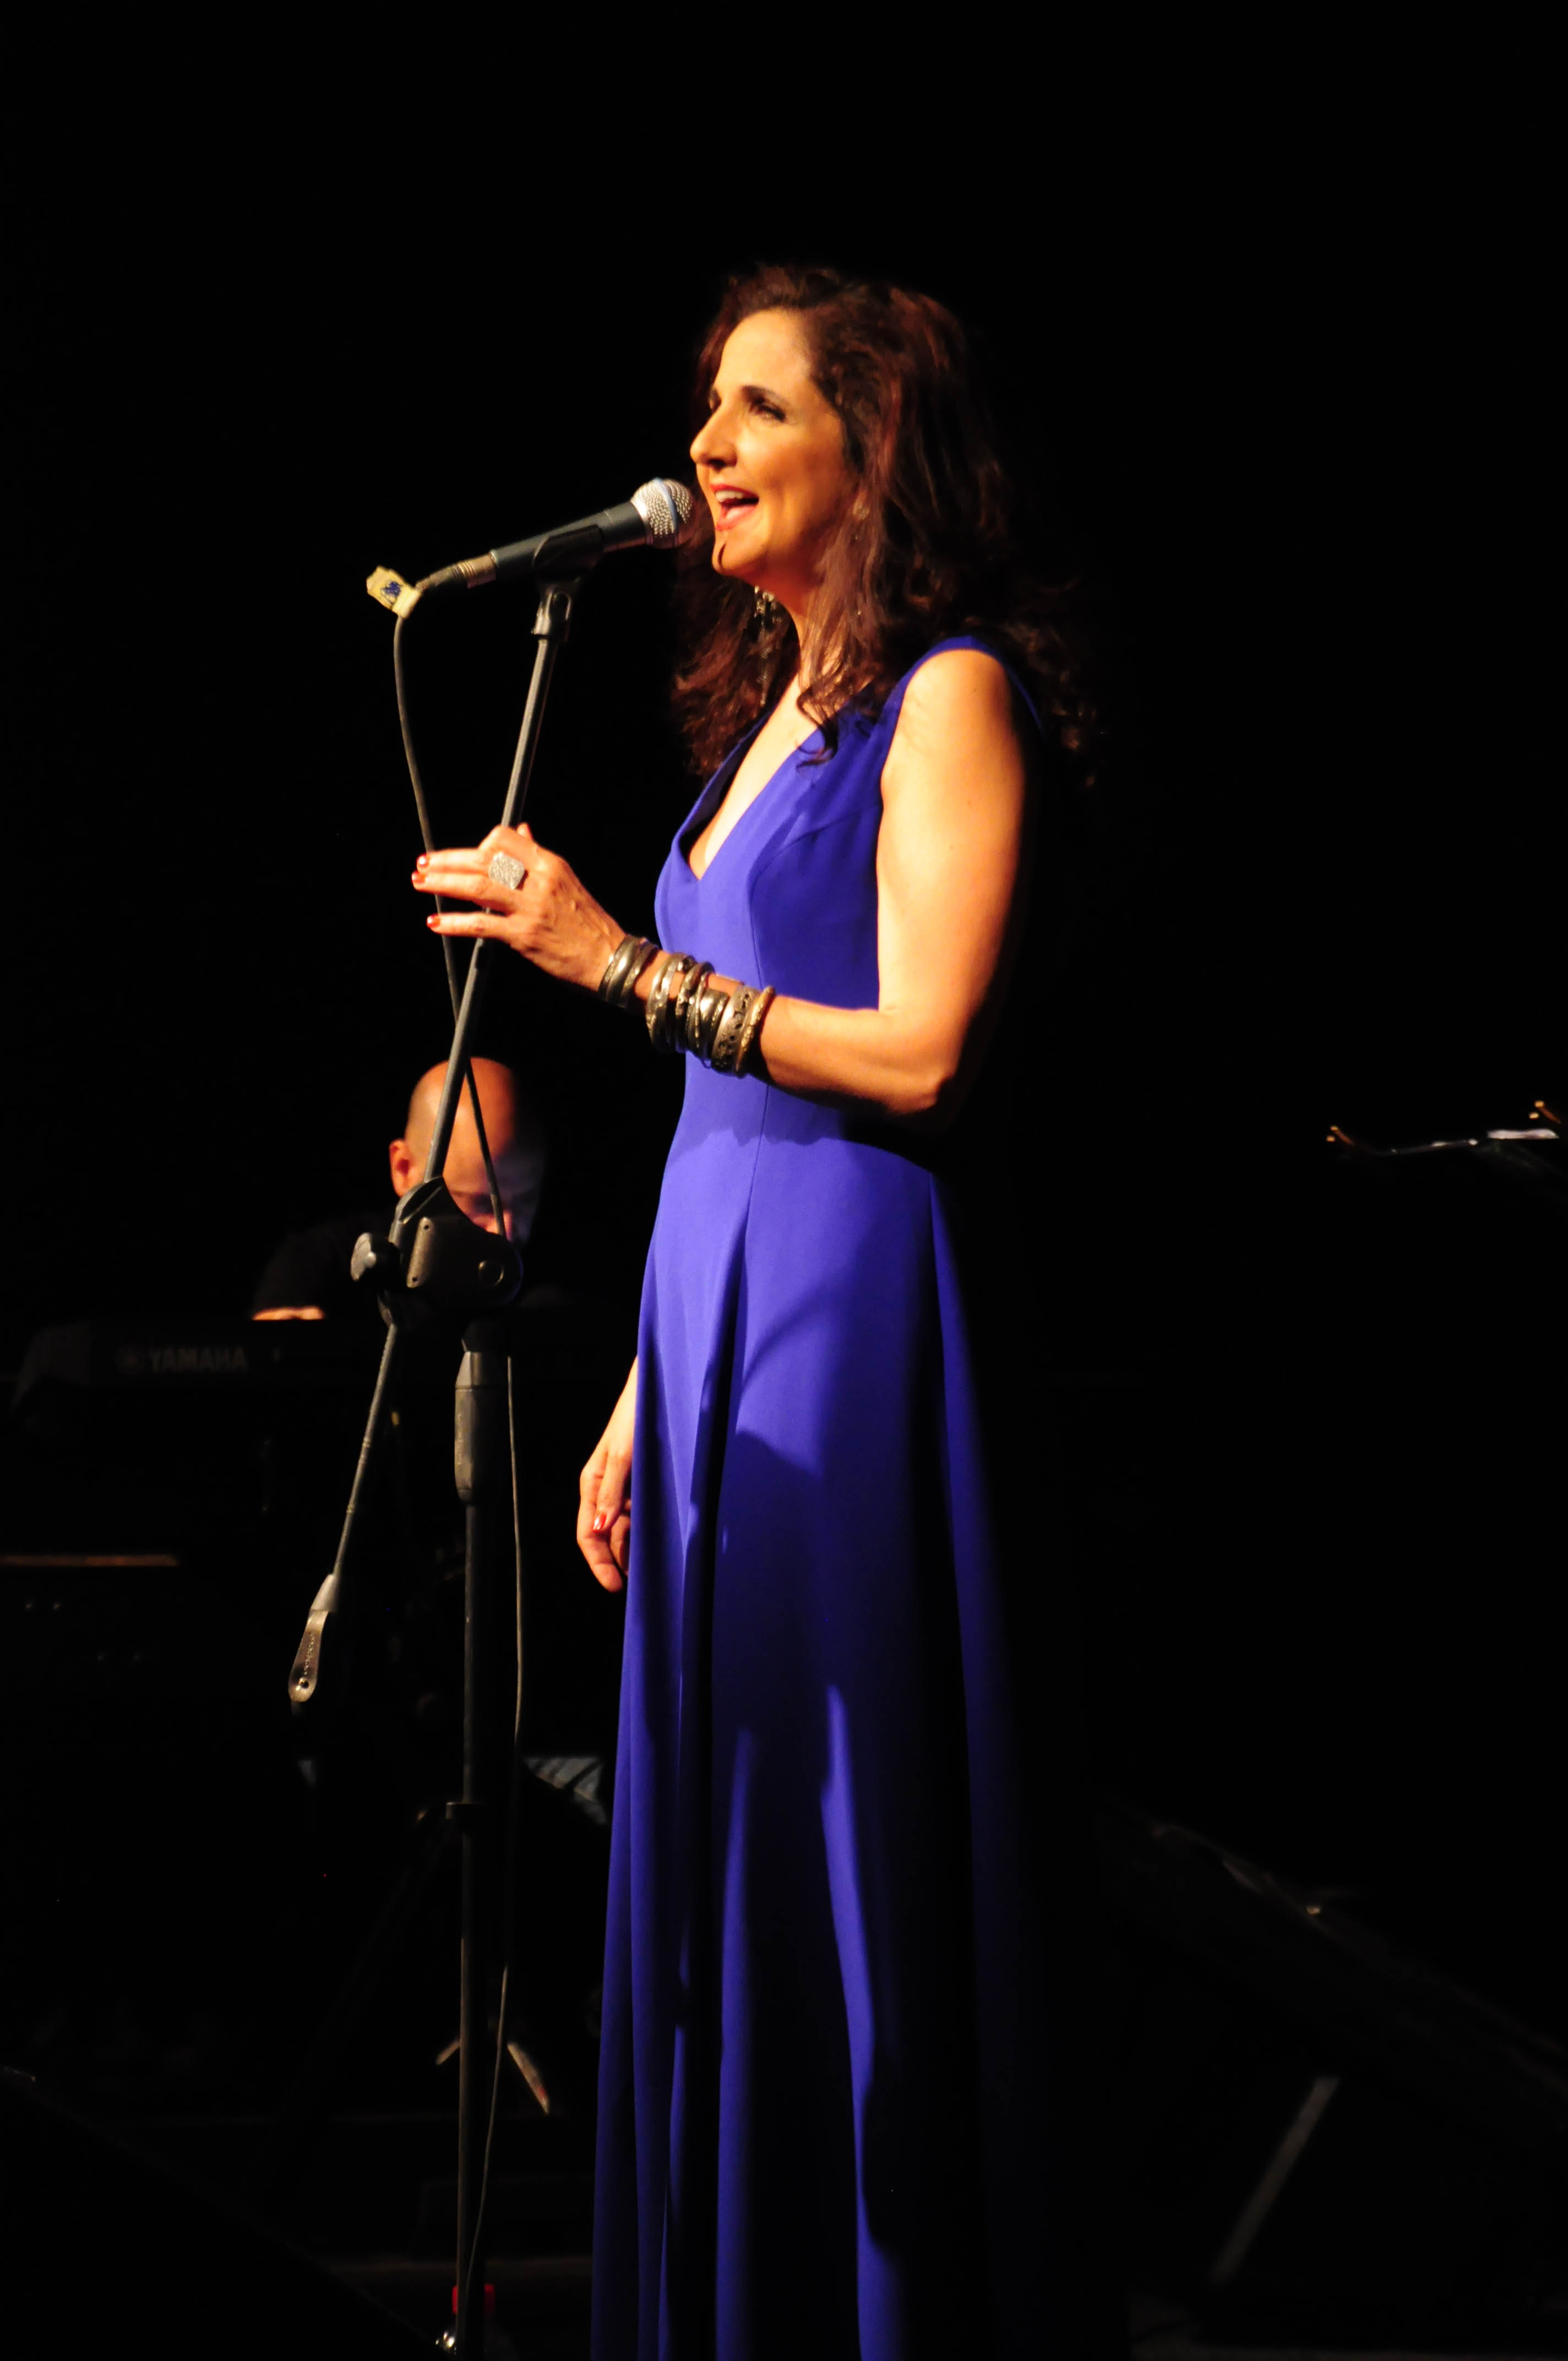 Lebanese singer Tania Saleh played three concerts in Cairo this week (Photo by Marwa Morgan)